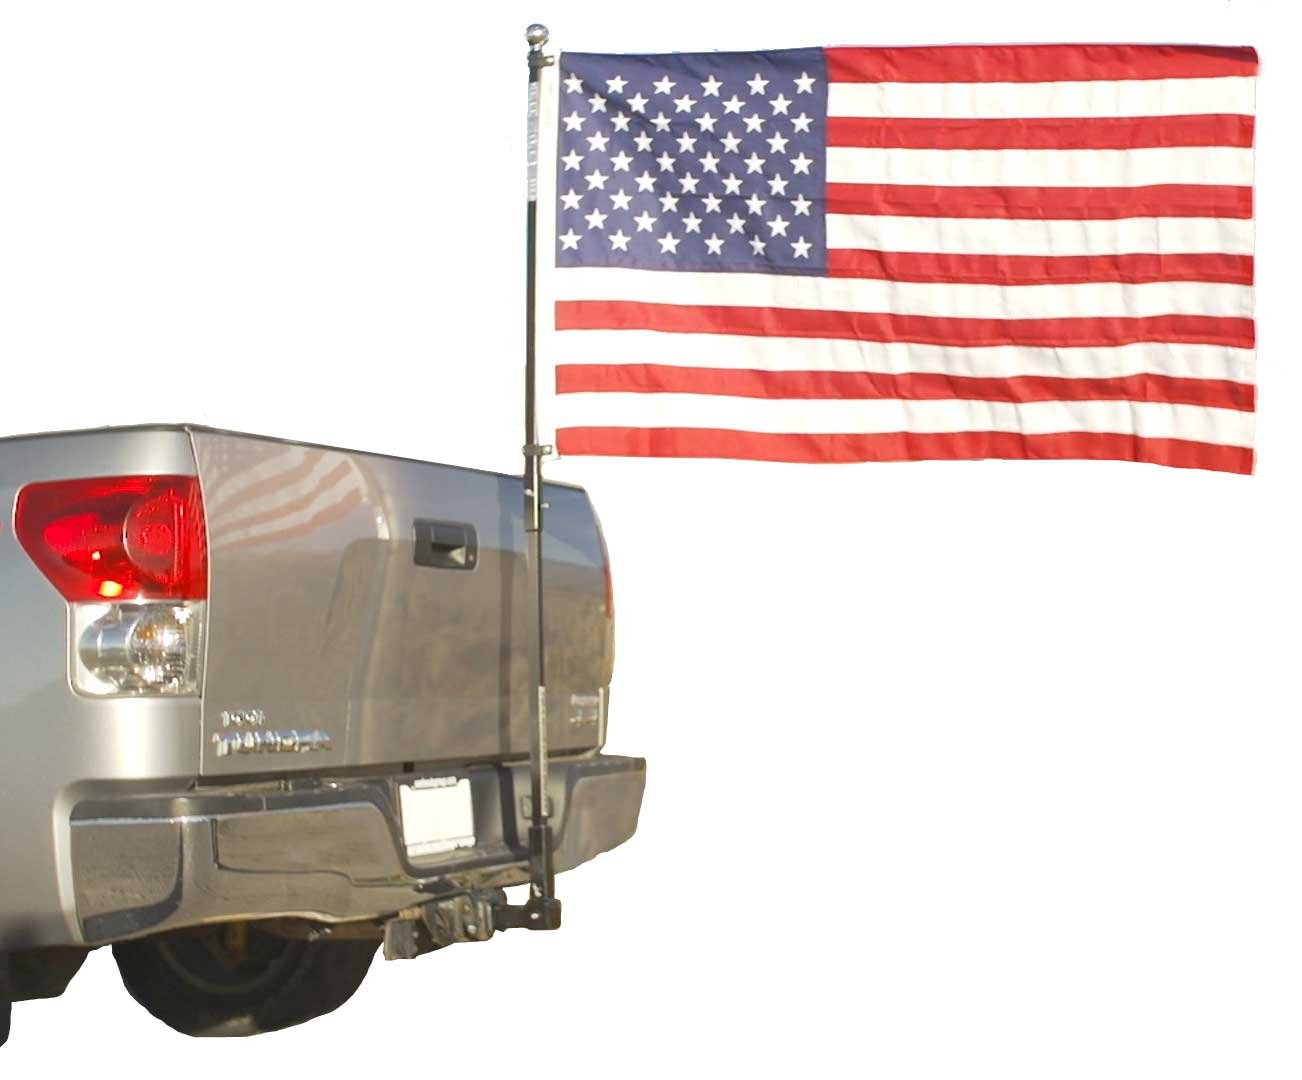 Flag Pole To Go For Trucks - Pole Mounts to Hitch- Fanpole by FanPole (Image #1)